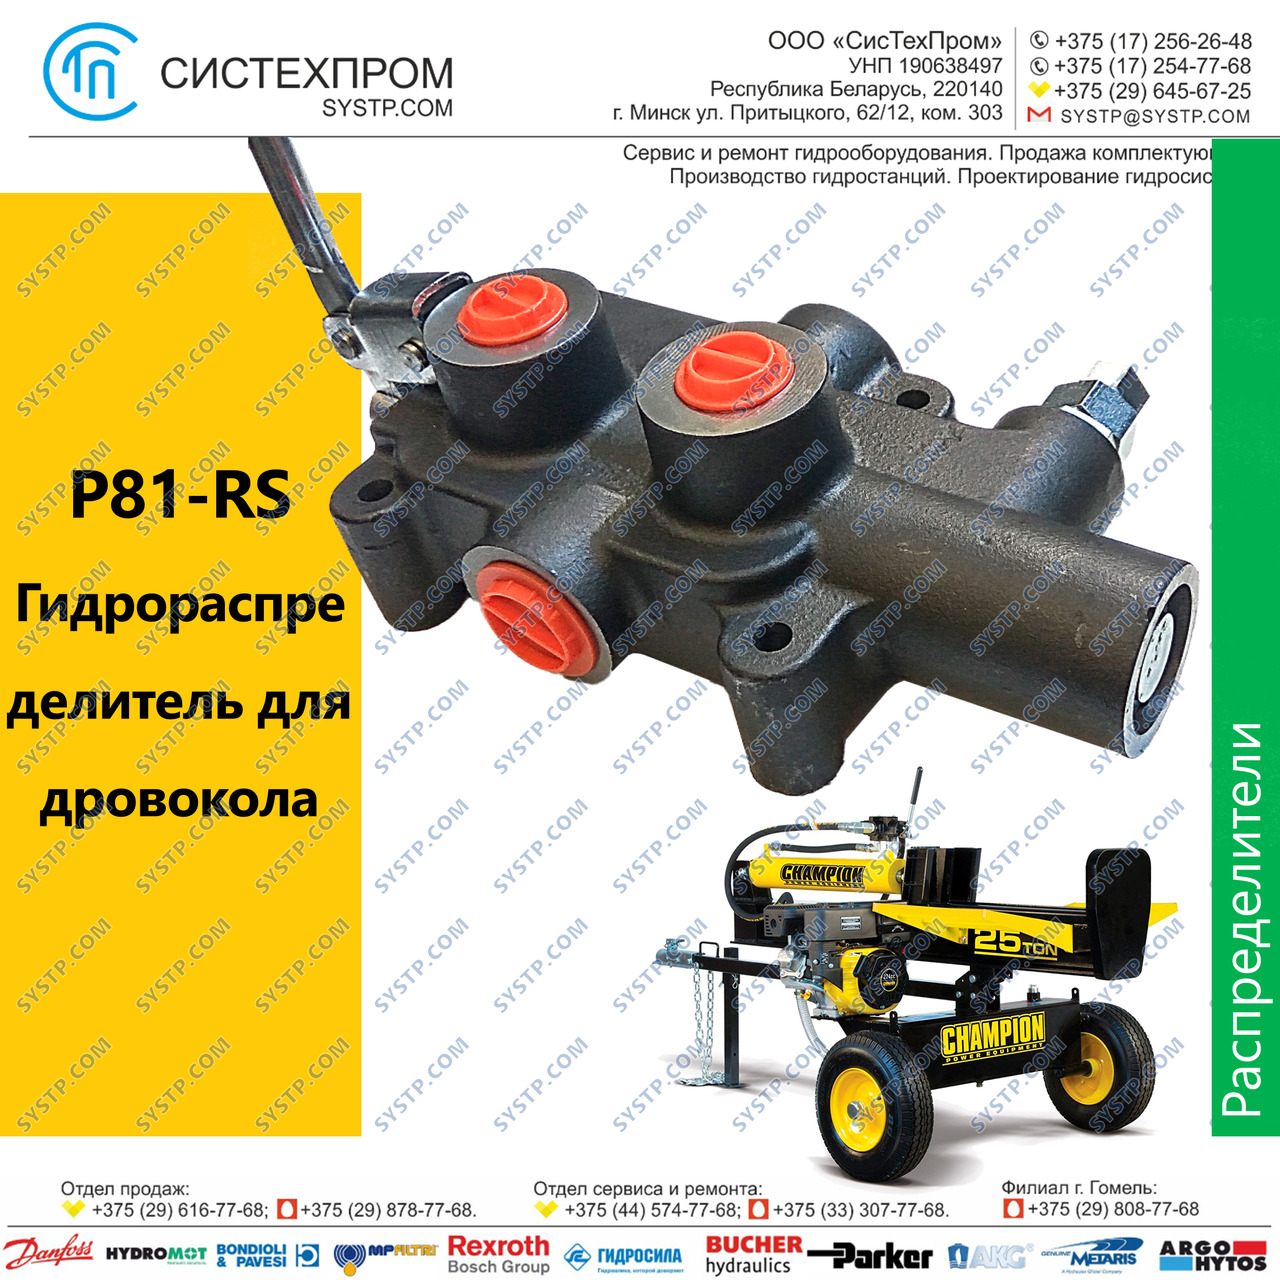 Гидрораспределитель P81-RS G12 для дровокола Rapid Extend Log Splitter